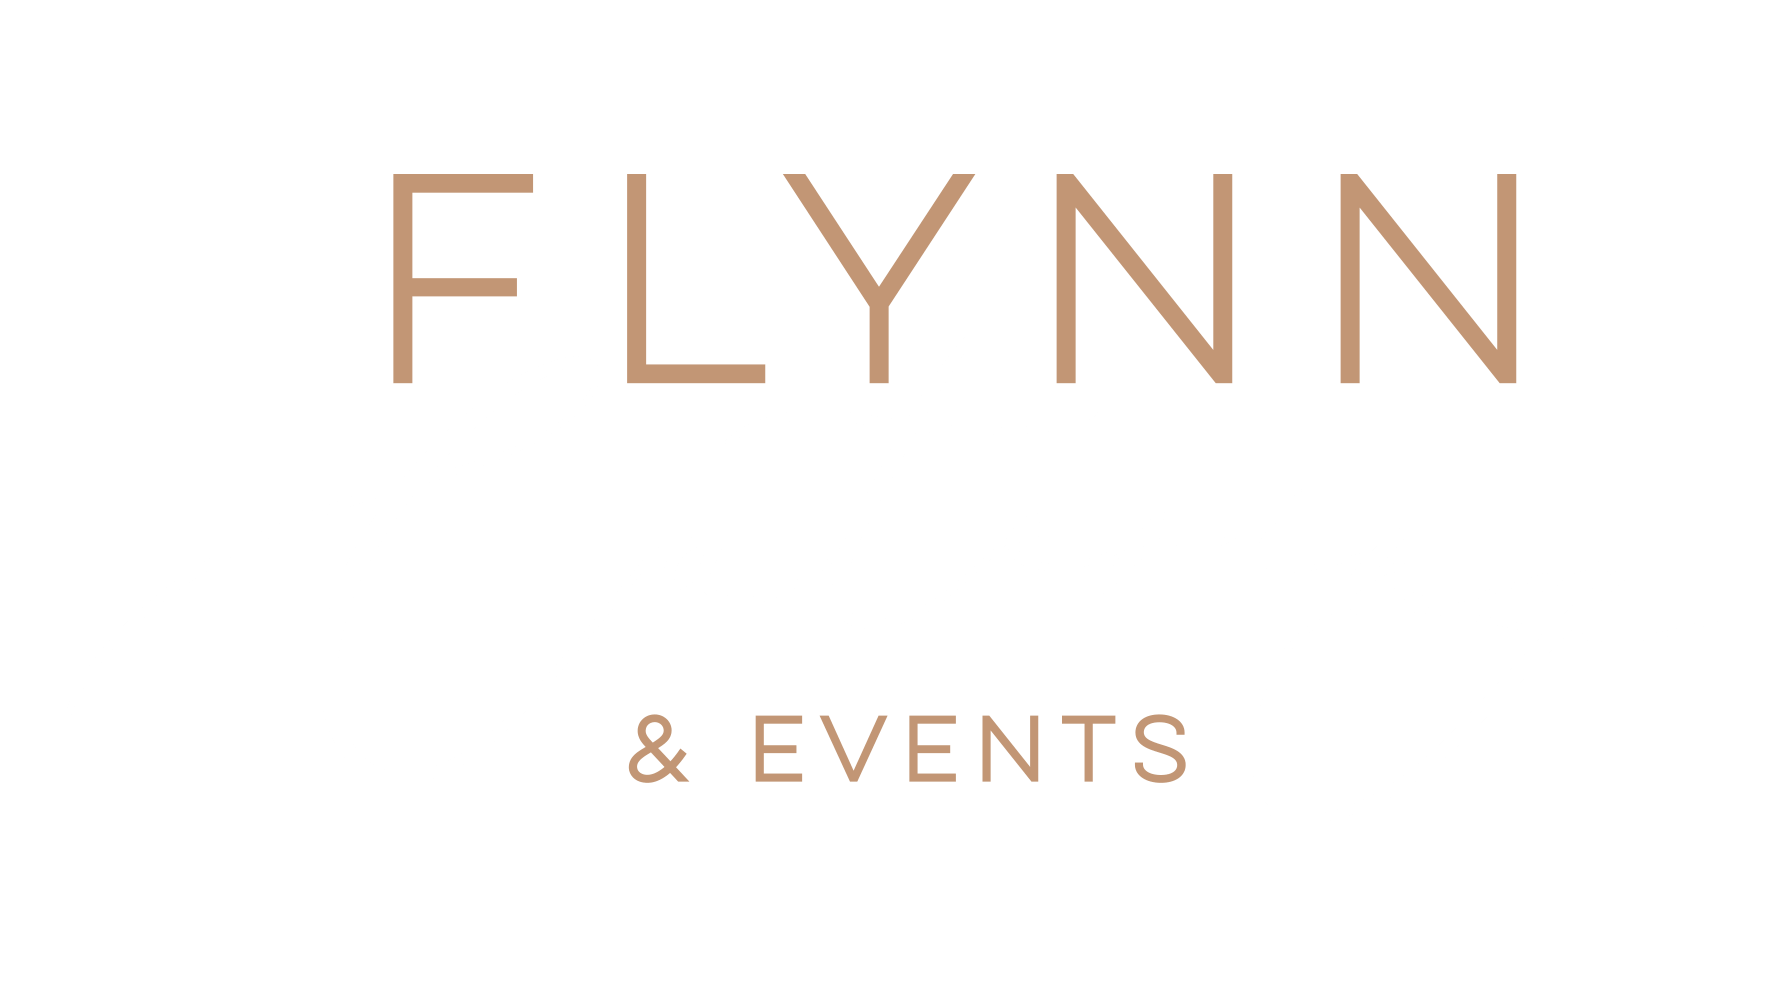 Flynn Catering & Events